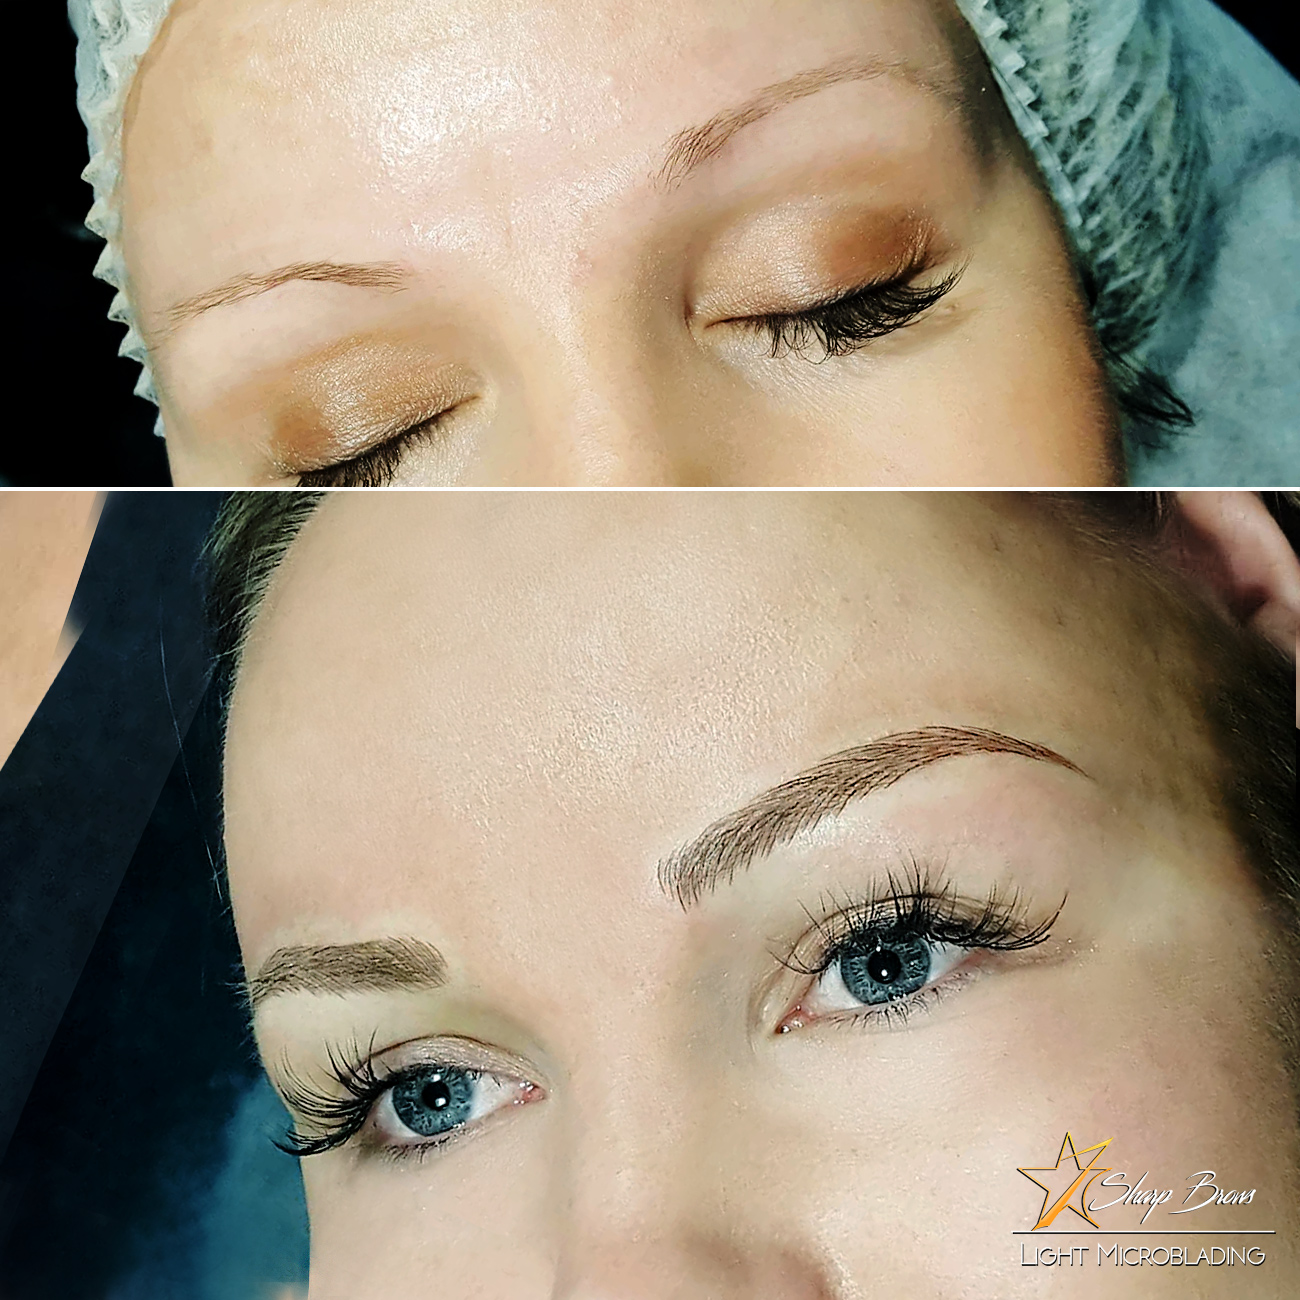 Light microblading. Even the customer herself was really surprised with the results. SharpBrows Light microblading changes the overall expression of the face completely.